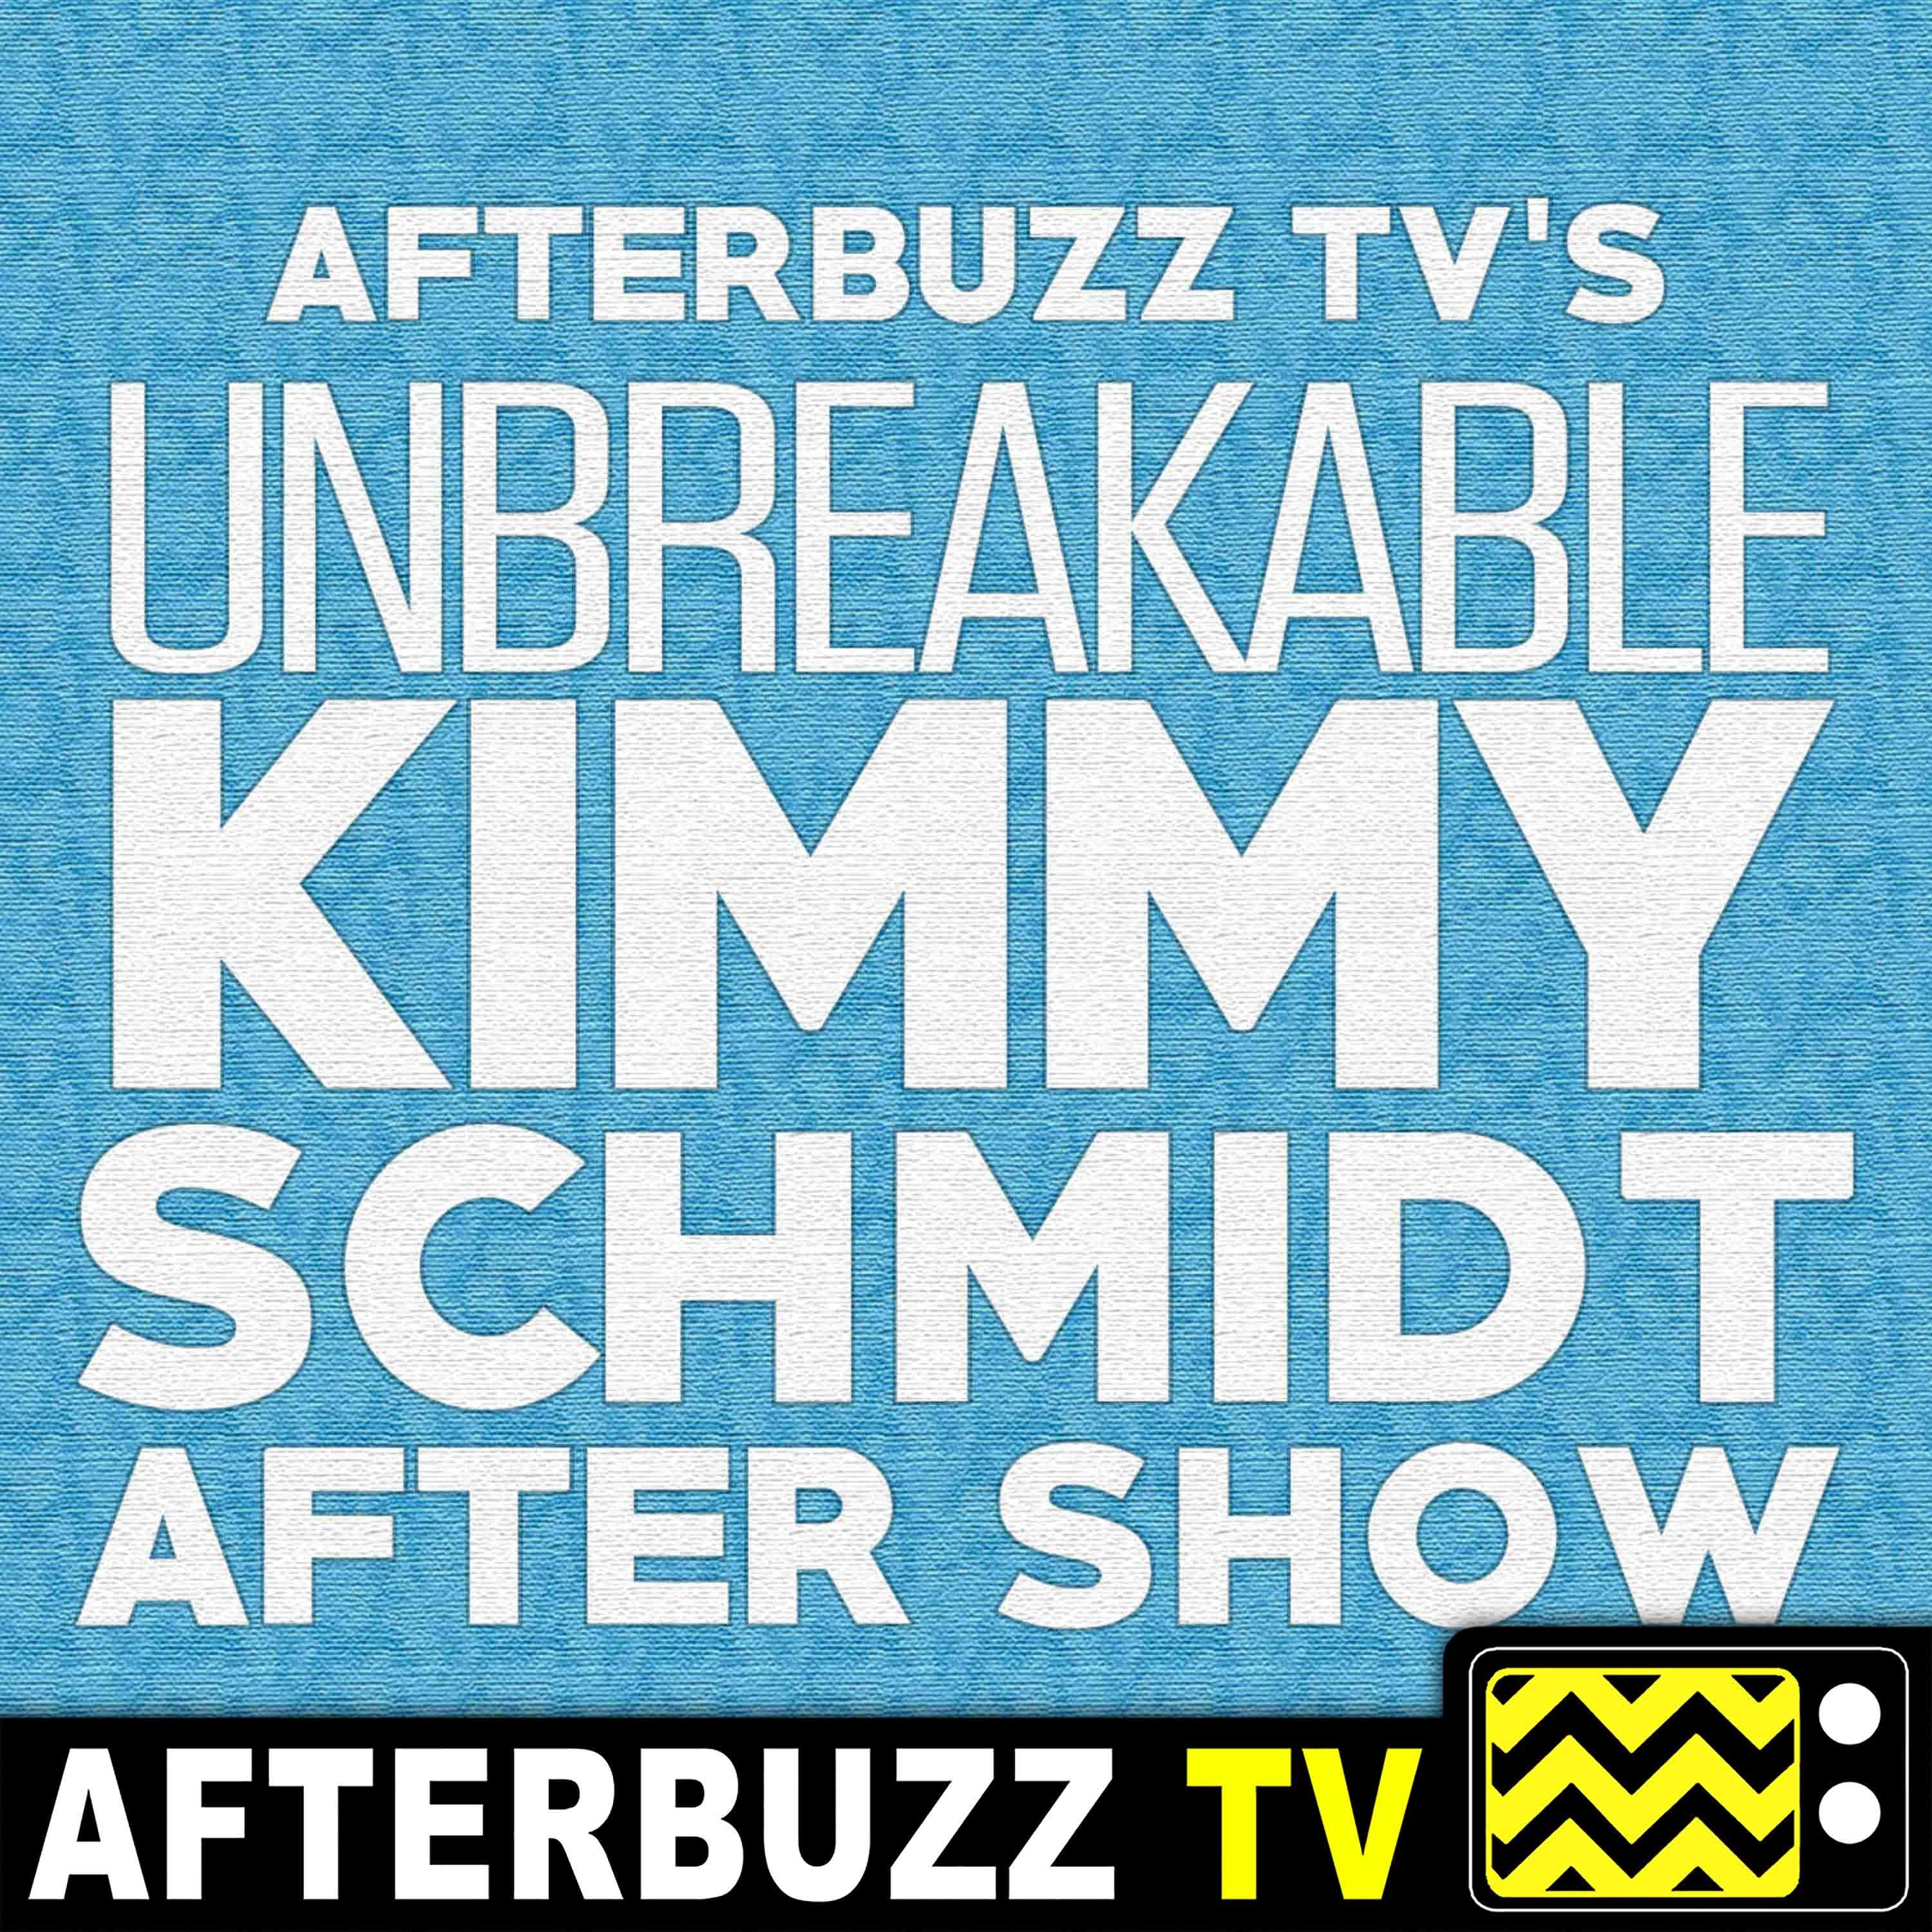 Unbreakable Kimmy Schmidt S:3 | Kimmy Goes to Church!; Kimmy Pulls Off a Heist! E:9 & E:10 | AfterBuzz TV AfterShow